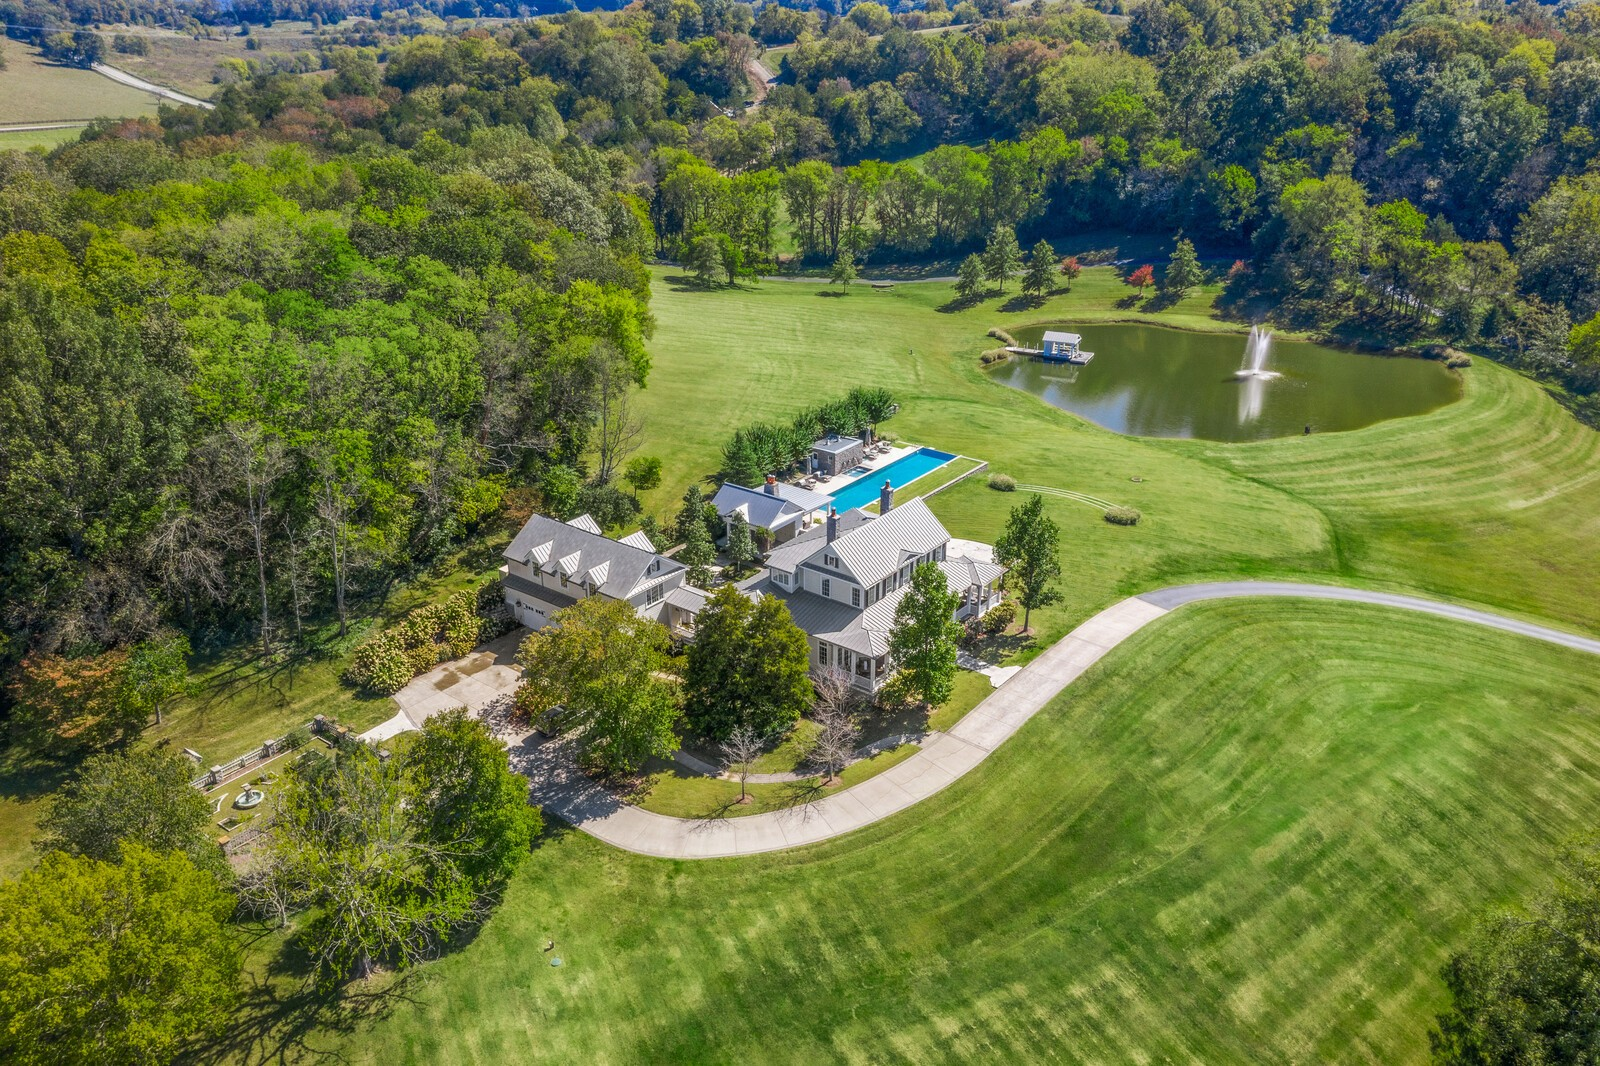 39+/- acres with two homes in heart of Leipers Fork. Main house is a cozy 3 BR 3.5 Bath farmhouse with breathtaking, preserved views. Two fireplaces with limestone mantles from LA. Gavin Duke designed outdoor dining/entertaining area with two fireplaces, built in gas bbq, ice maker, and refrigerator. Salt infinity edge pool overlooks a fountain fish pond with an outdoor bath attached to the spa. Above a 3 car garage is a 1 BR 1 Bath apartment. Formal garden, and includes 3377 Bailey Rd studio